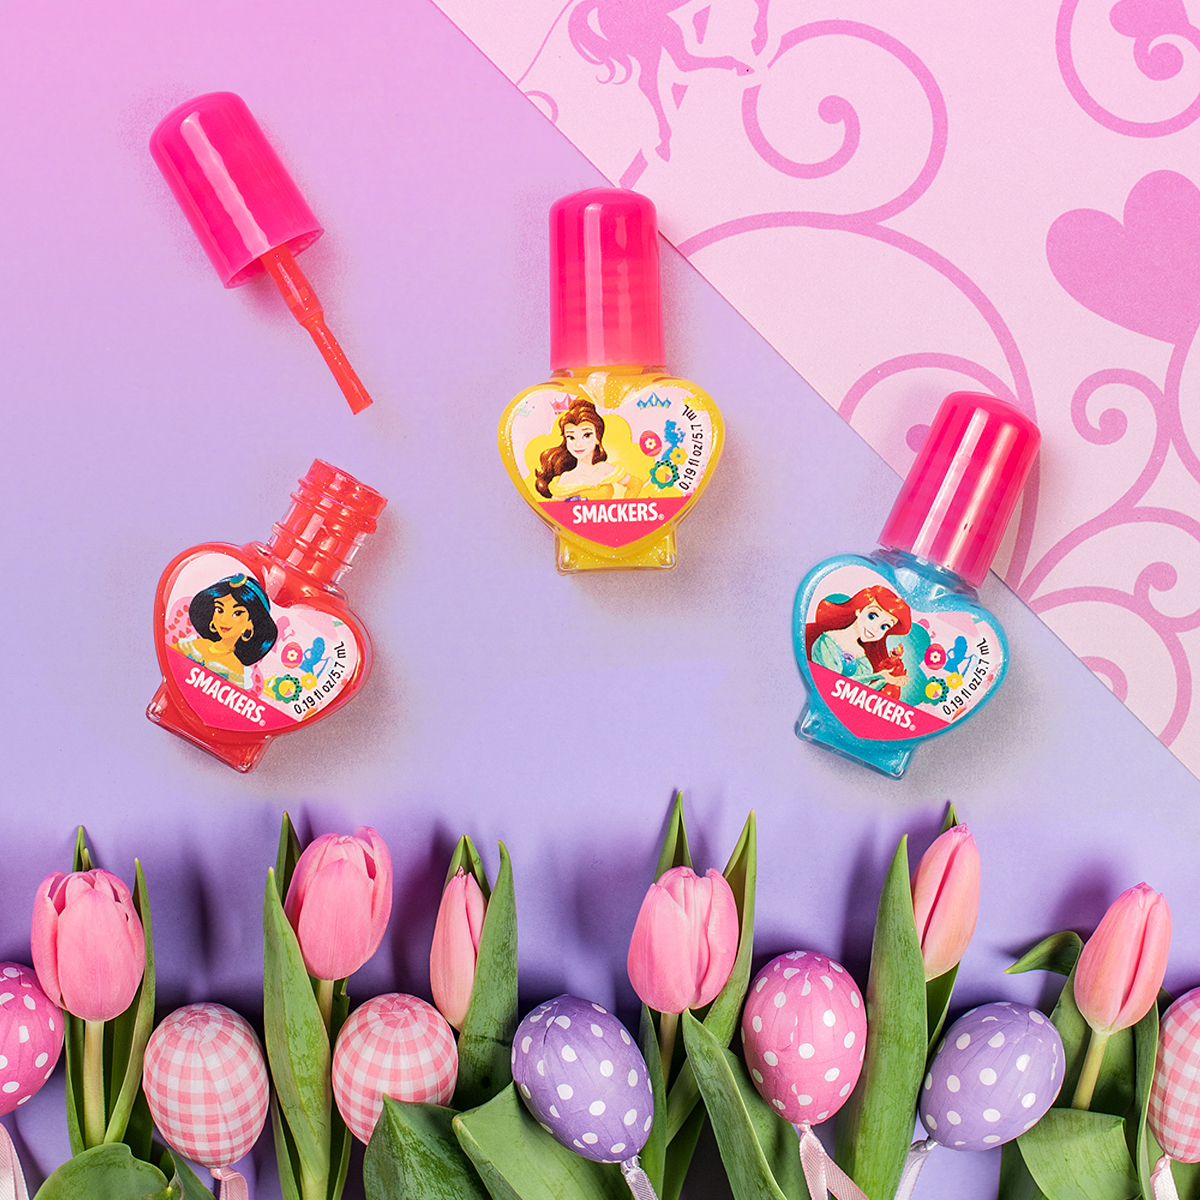 It's #ManiMonday and who doesn't want to be pampered like a #DisneyPrincess? Get the most adorable set of nail polish for your #Easterbasket now available @RiteAid @Target and @Walmart #disneynailpolish #eastertreats #giftideas #smackerspic.twitter.com/lTSge0x6no